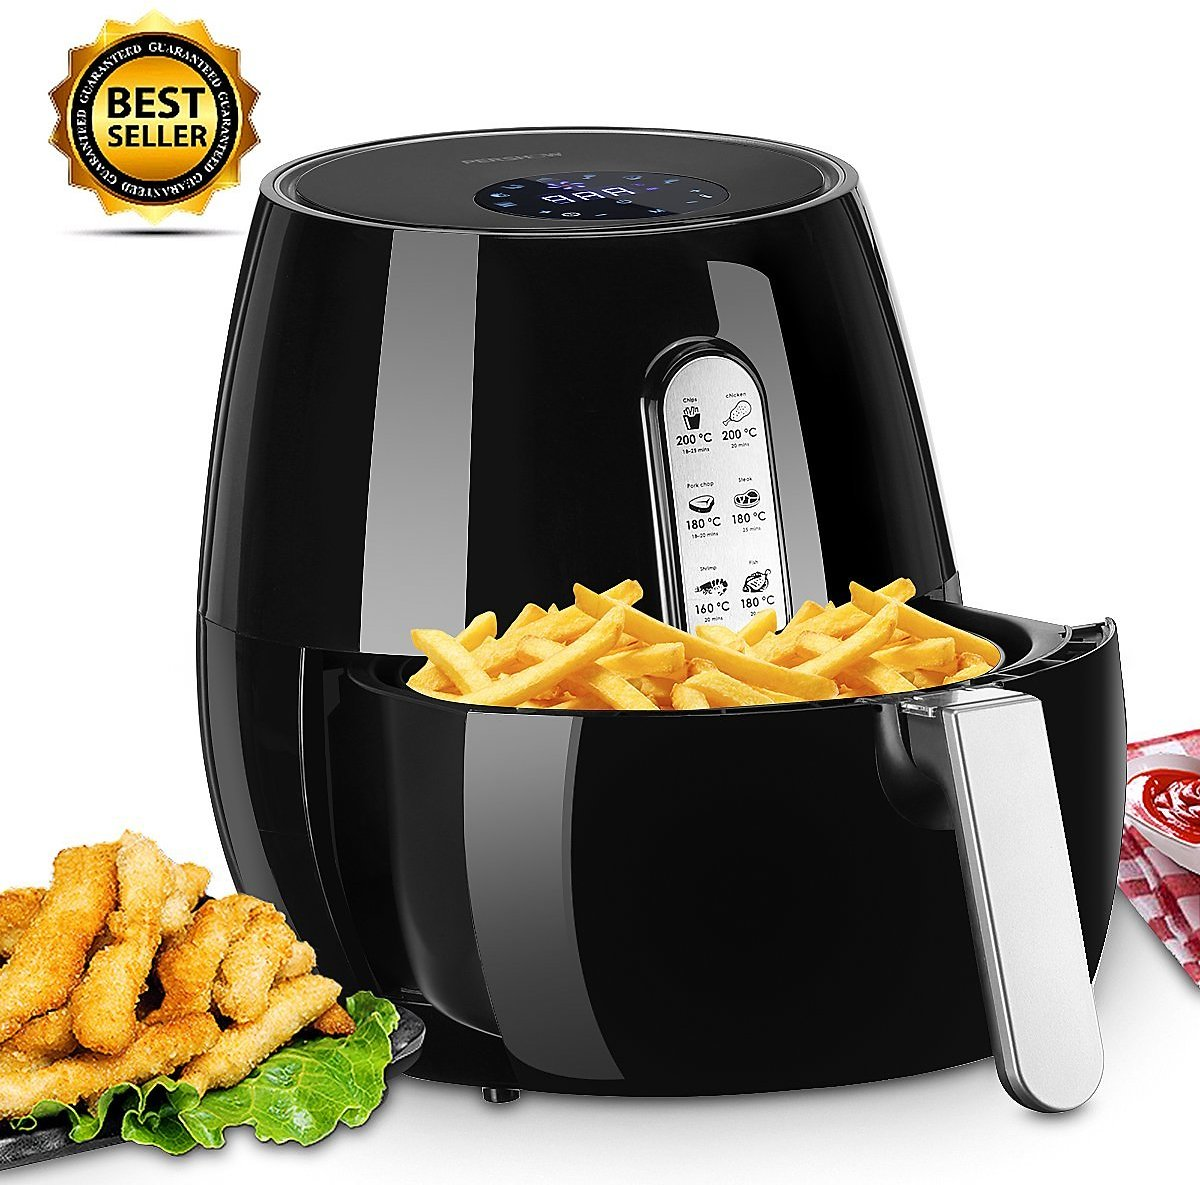 5.2qt, Oil Free Electric Digital Air Fryer, W/LCD Screen, Non-Stick Coating, Temp Control, Timer, Removable Basket